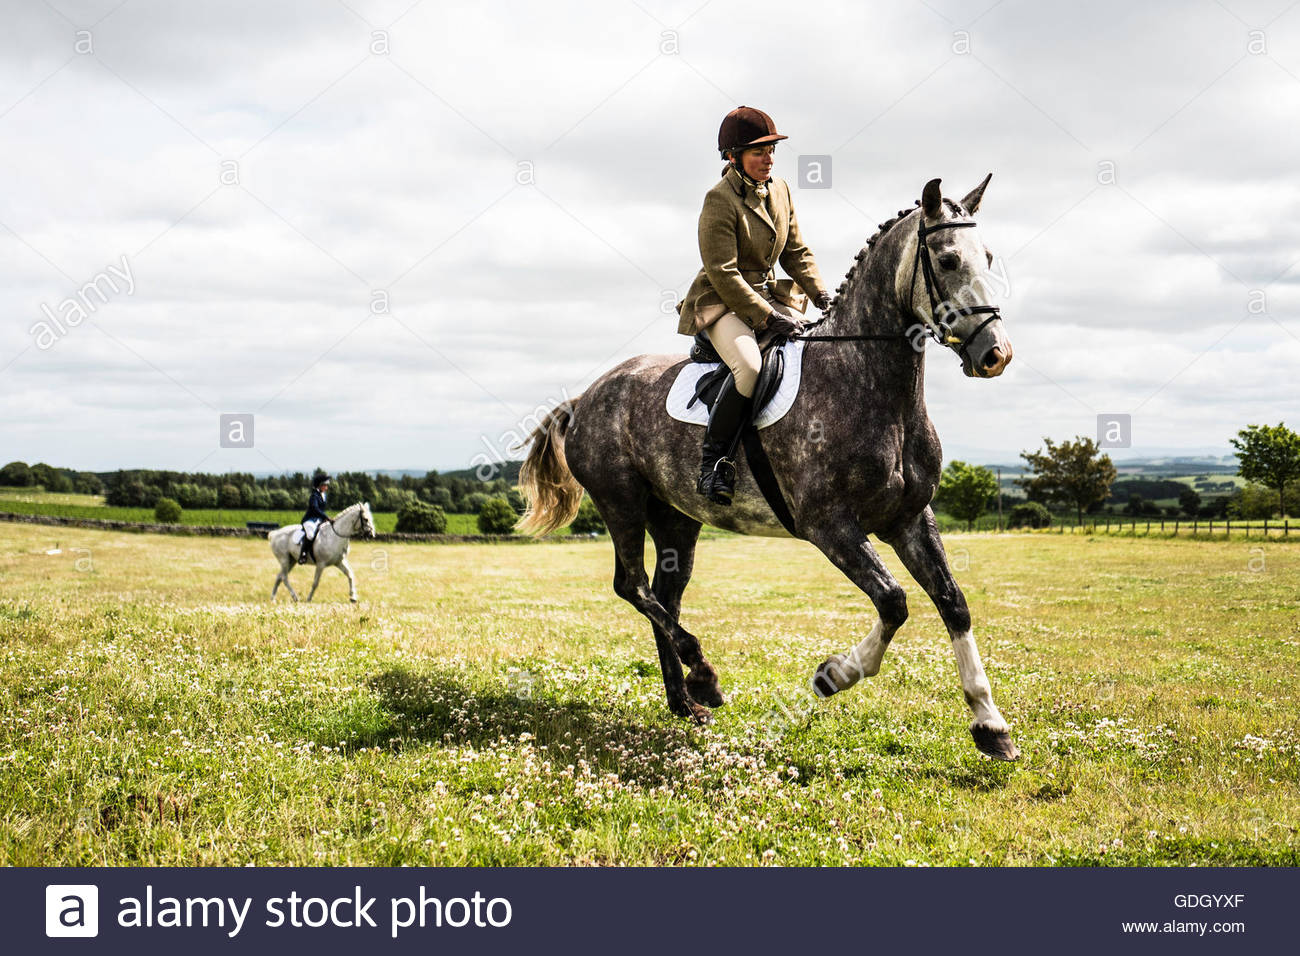 ISEC, Selkirk, Scottish Borders, UK. 16th July 2016. A woman on a grey pony at the Ian Stark Equestrian Centre near - Stock Image